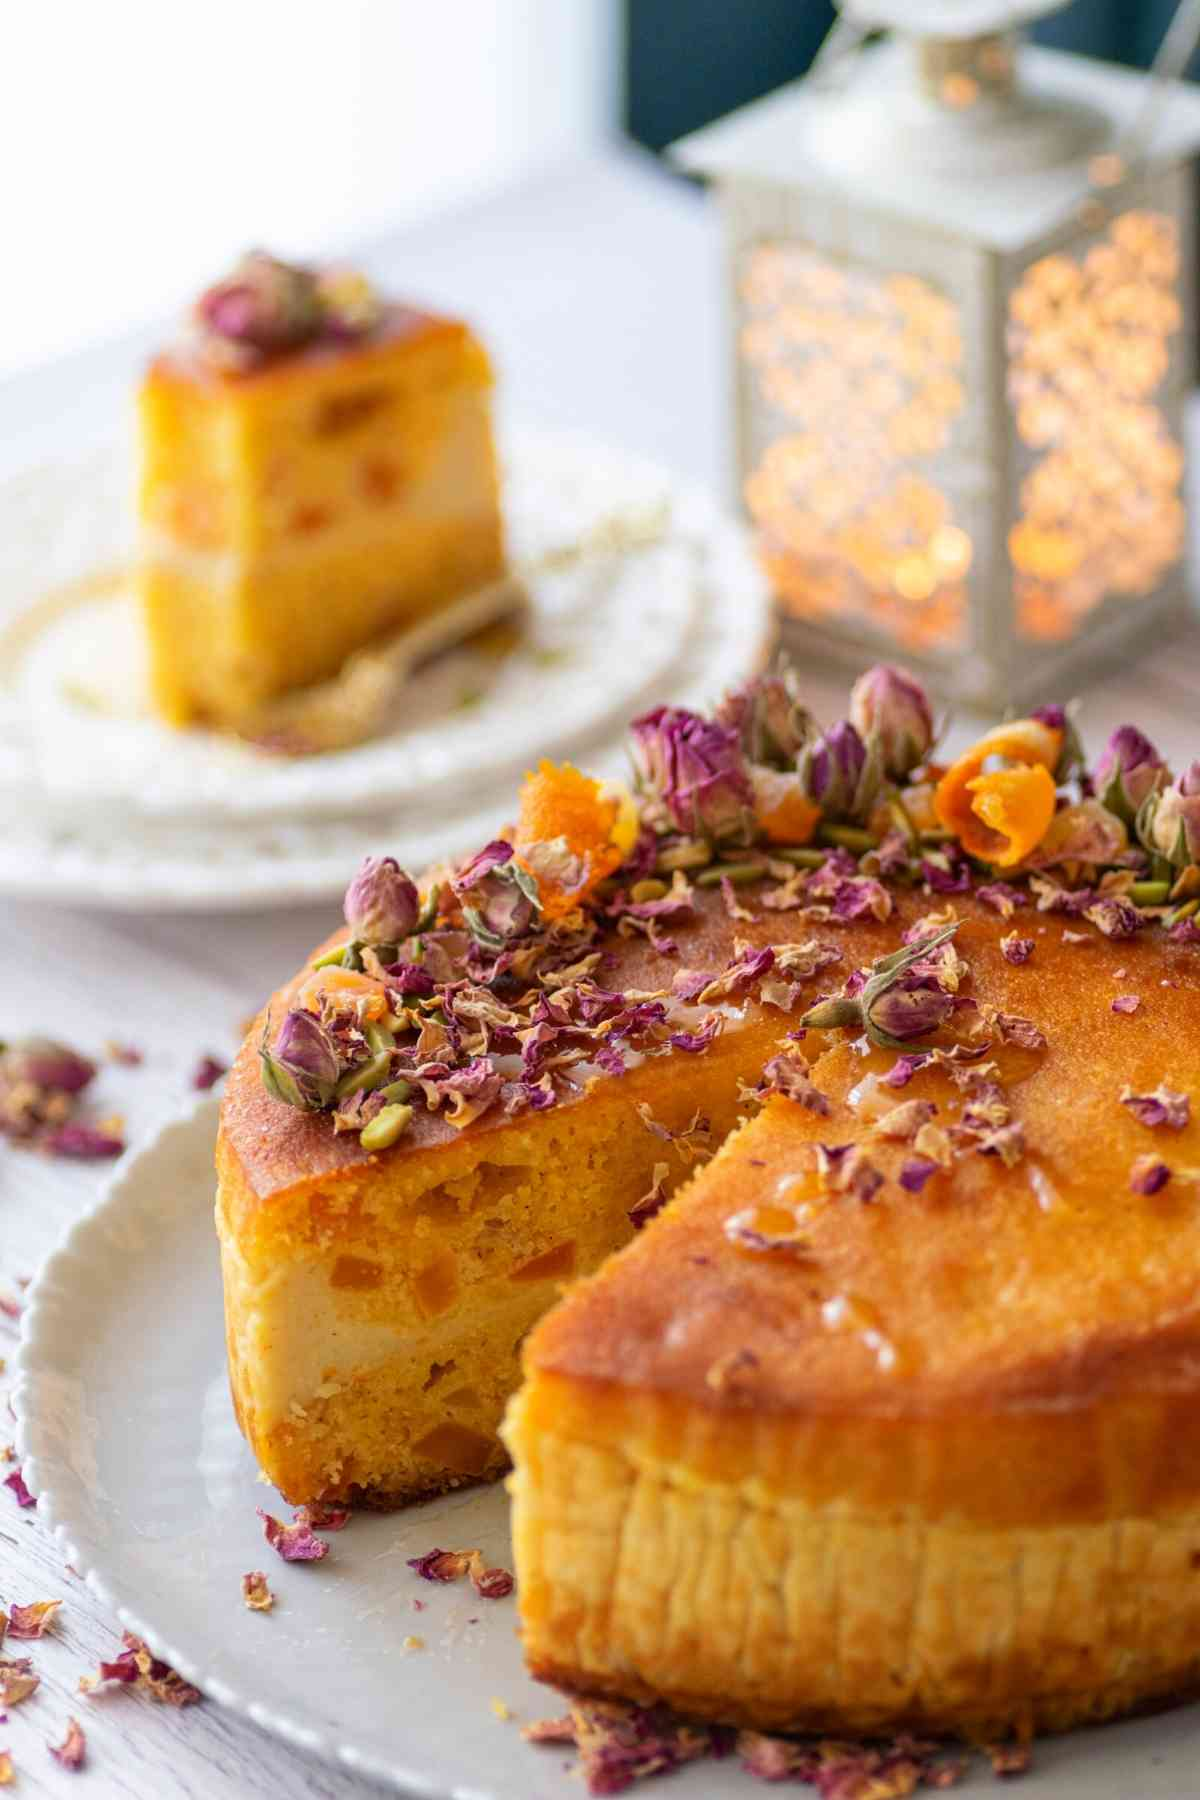 Basbousa cake with cream filling with slice cut out